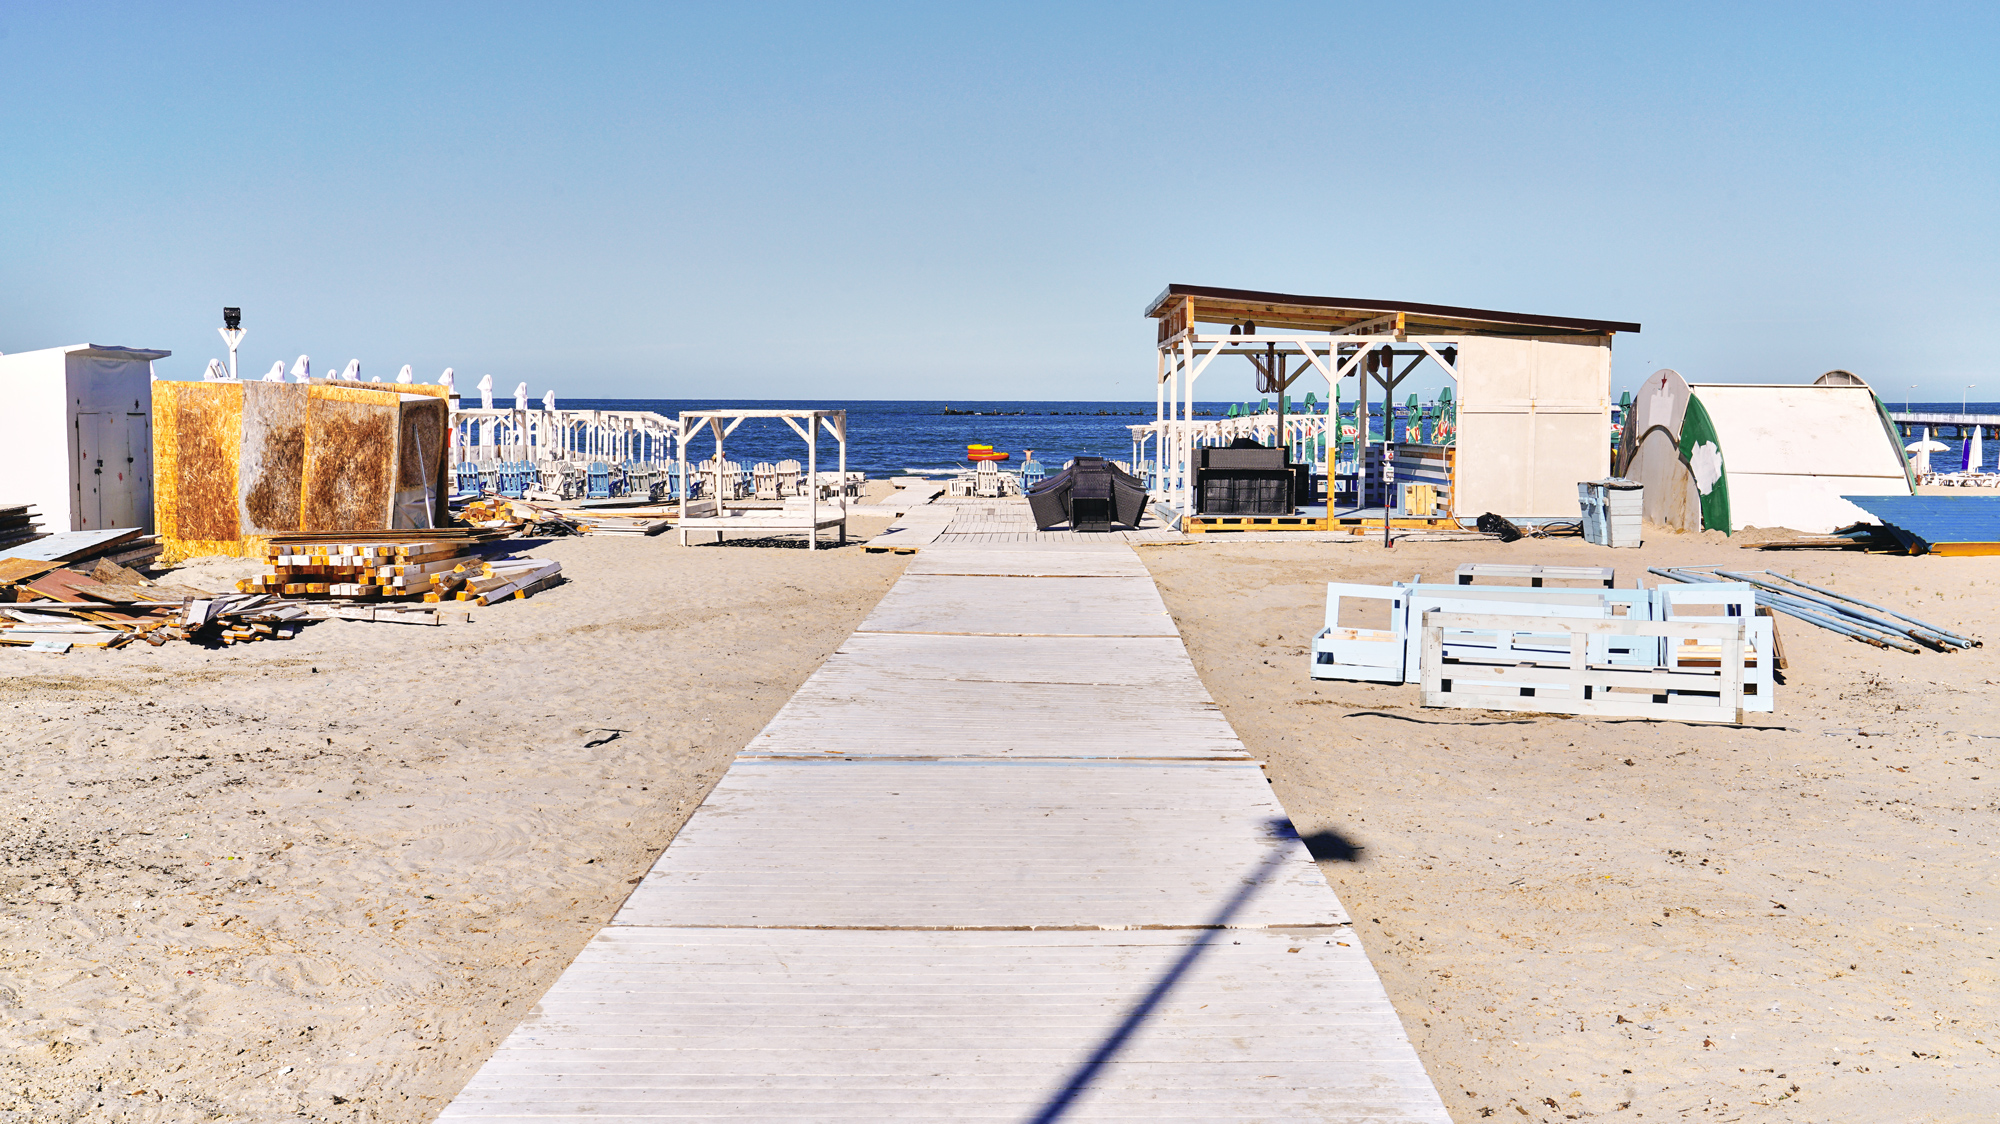 An Eastern European beach resort, normally a refuge of relaxation, lays dormant in its own state of rest. Is it abandoned, or in transition?